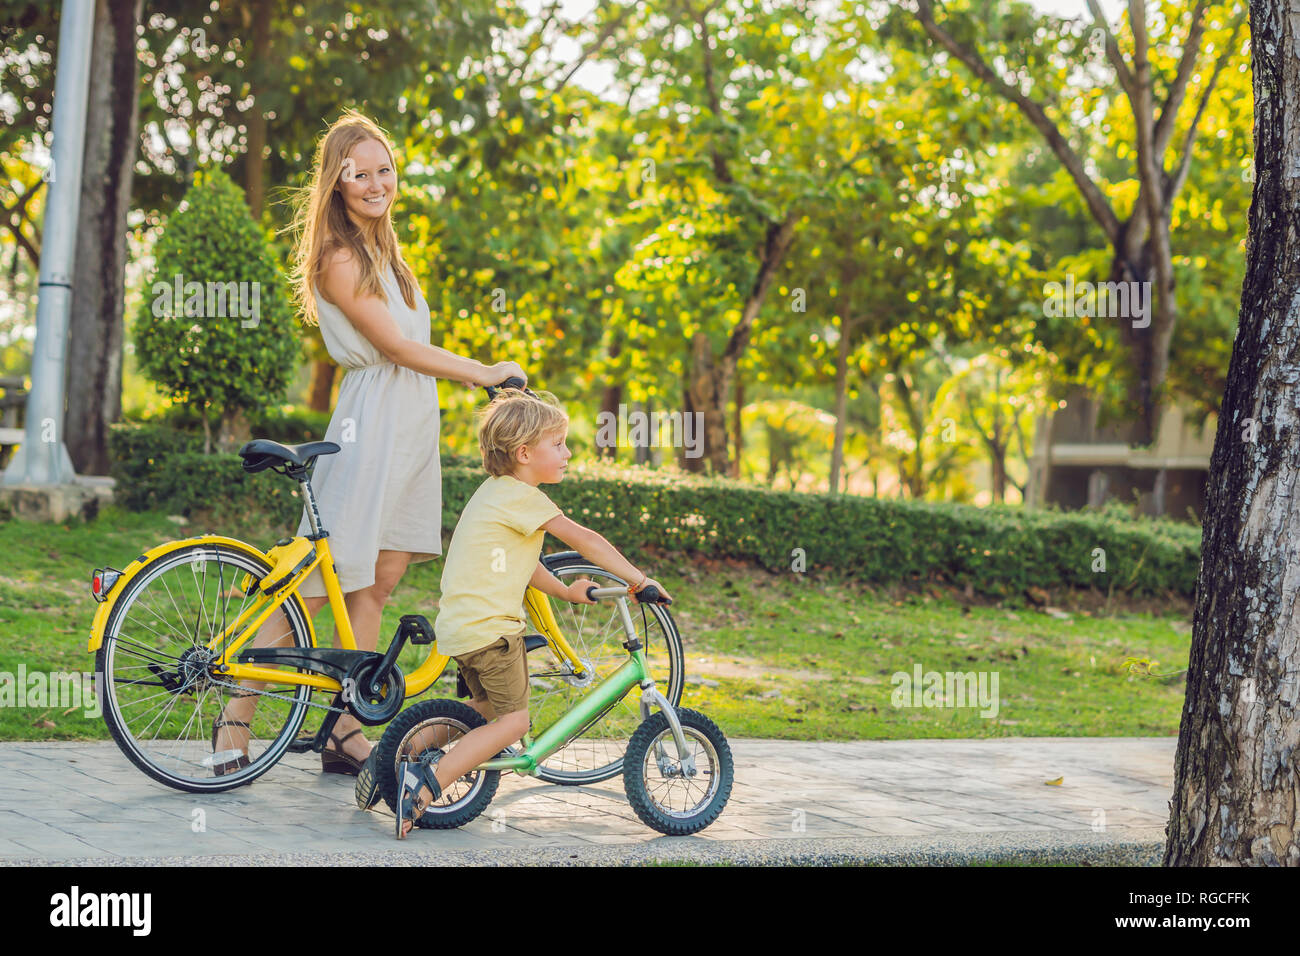 Happy family is riding bikes outdoors and smiling. Mom on a bike and son on a balancebike Stock Photo